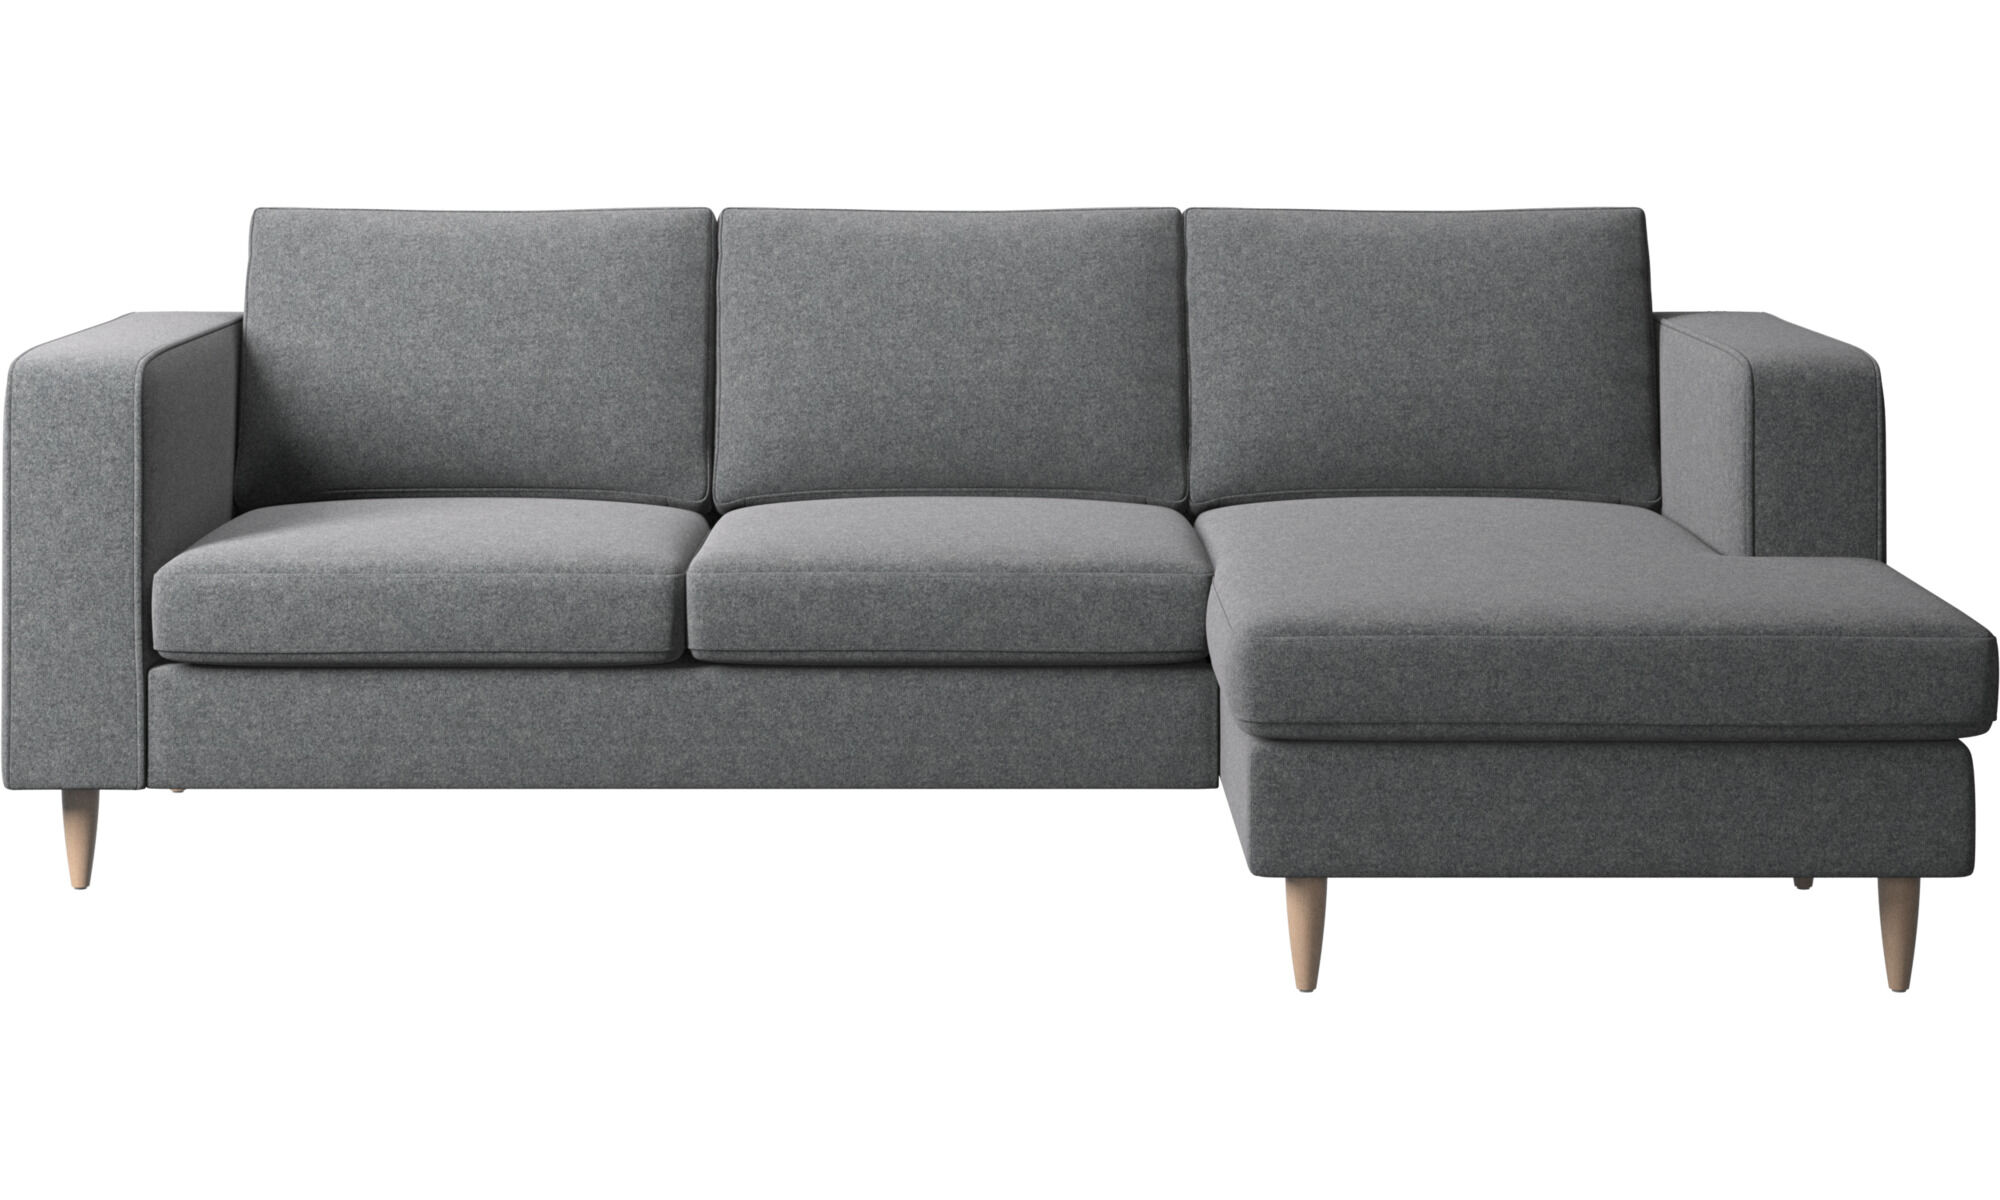 Chaise Lounge Sofas   Indivi 2 Sofa With Resting Unit   Gray   Fabric